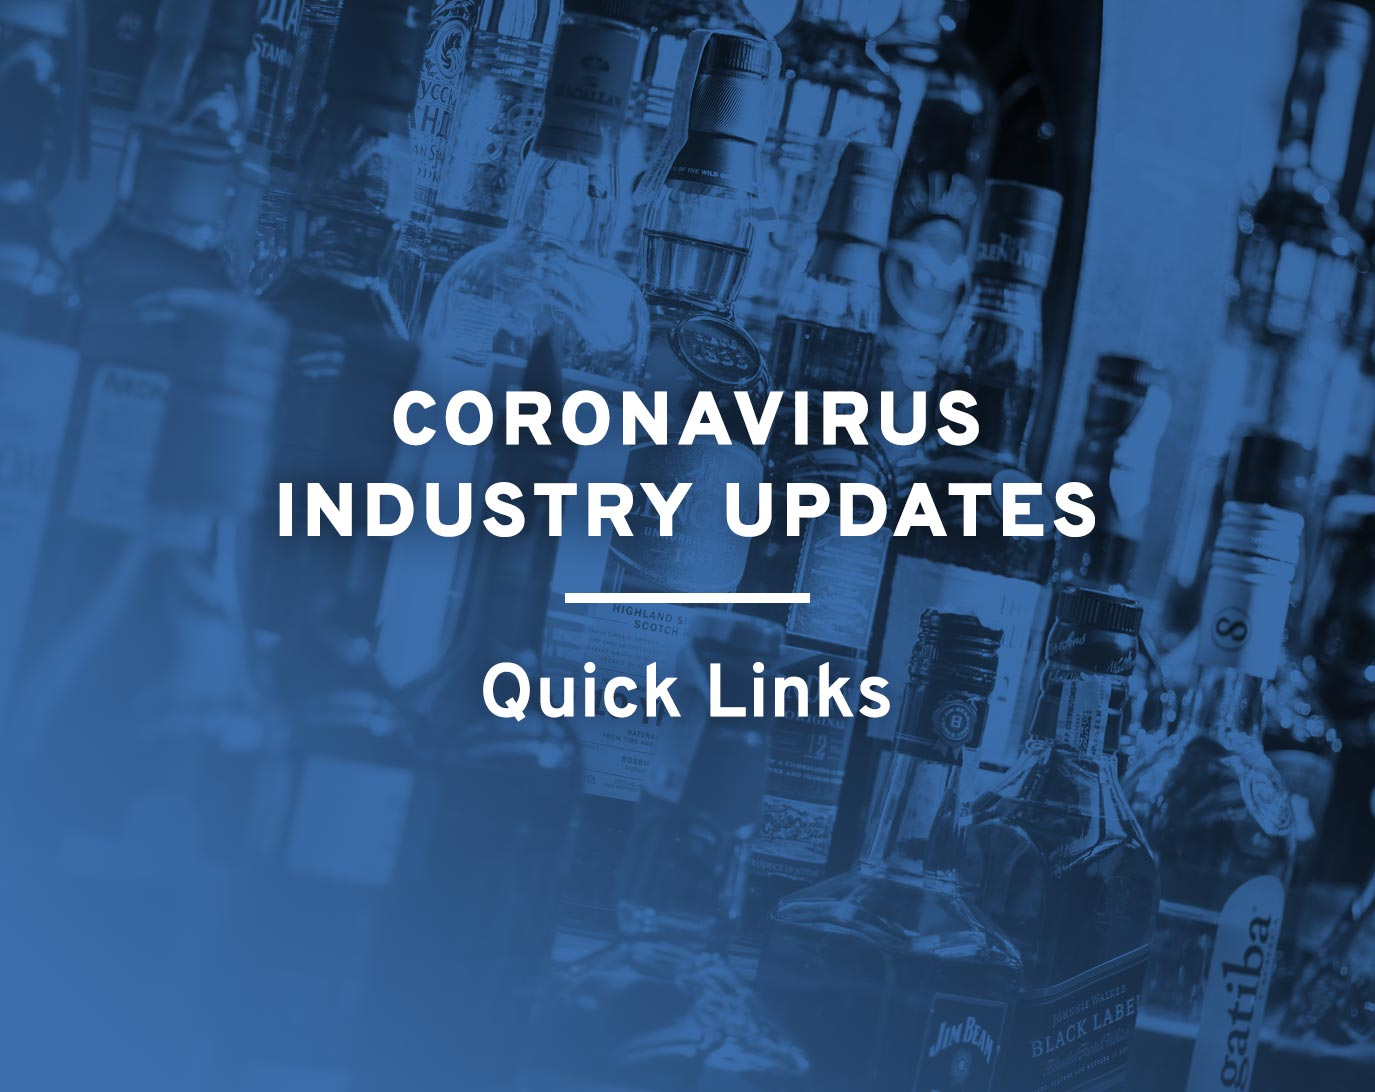 Coronavirus Updates & Resource Links